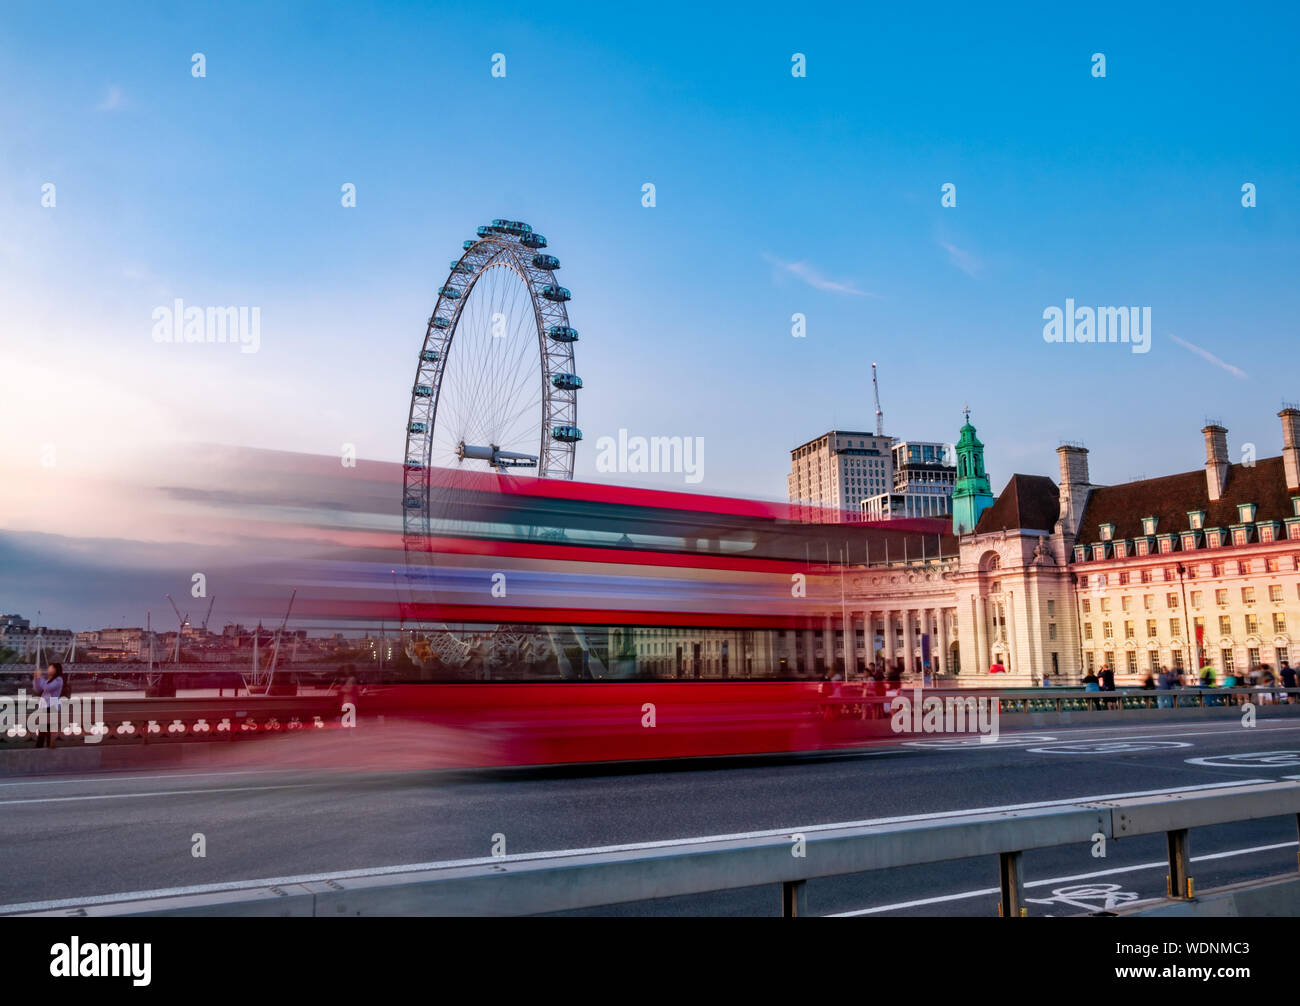 Long exposure photography of Double decker red bus in motion on Westminster Abbey bridge against the Eye of London in England Stock Photo